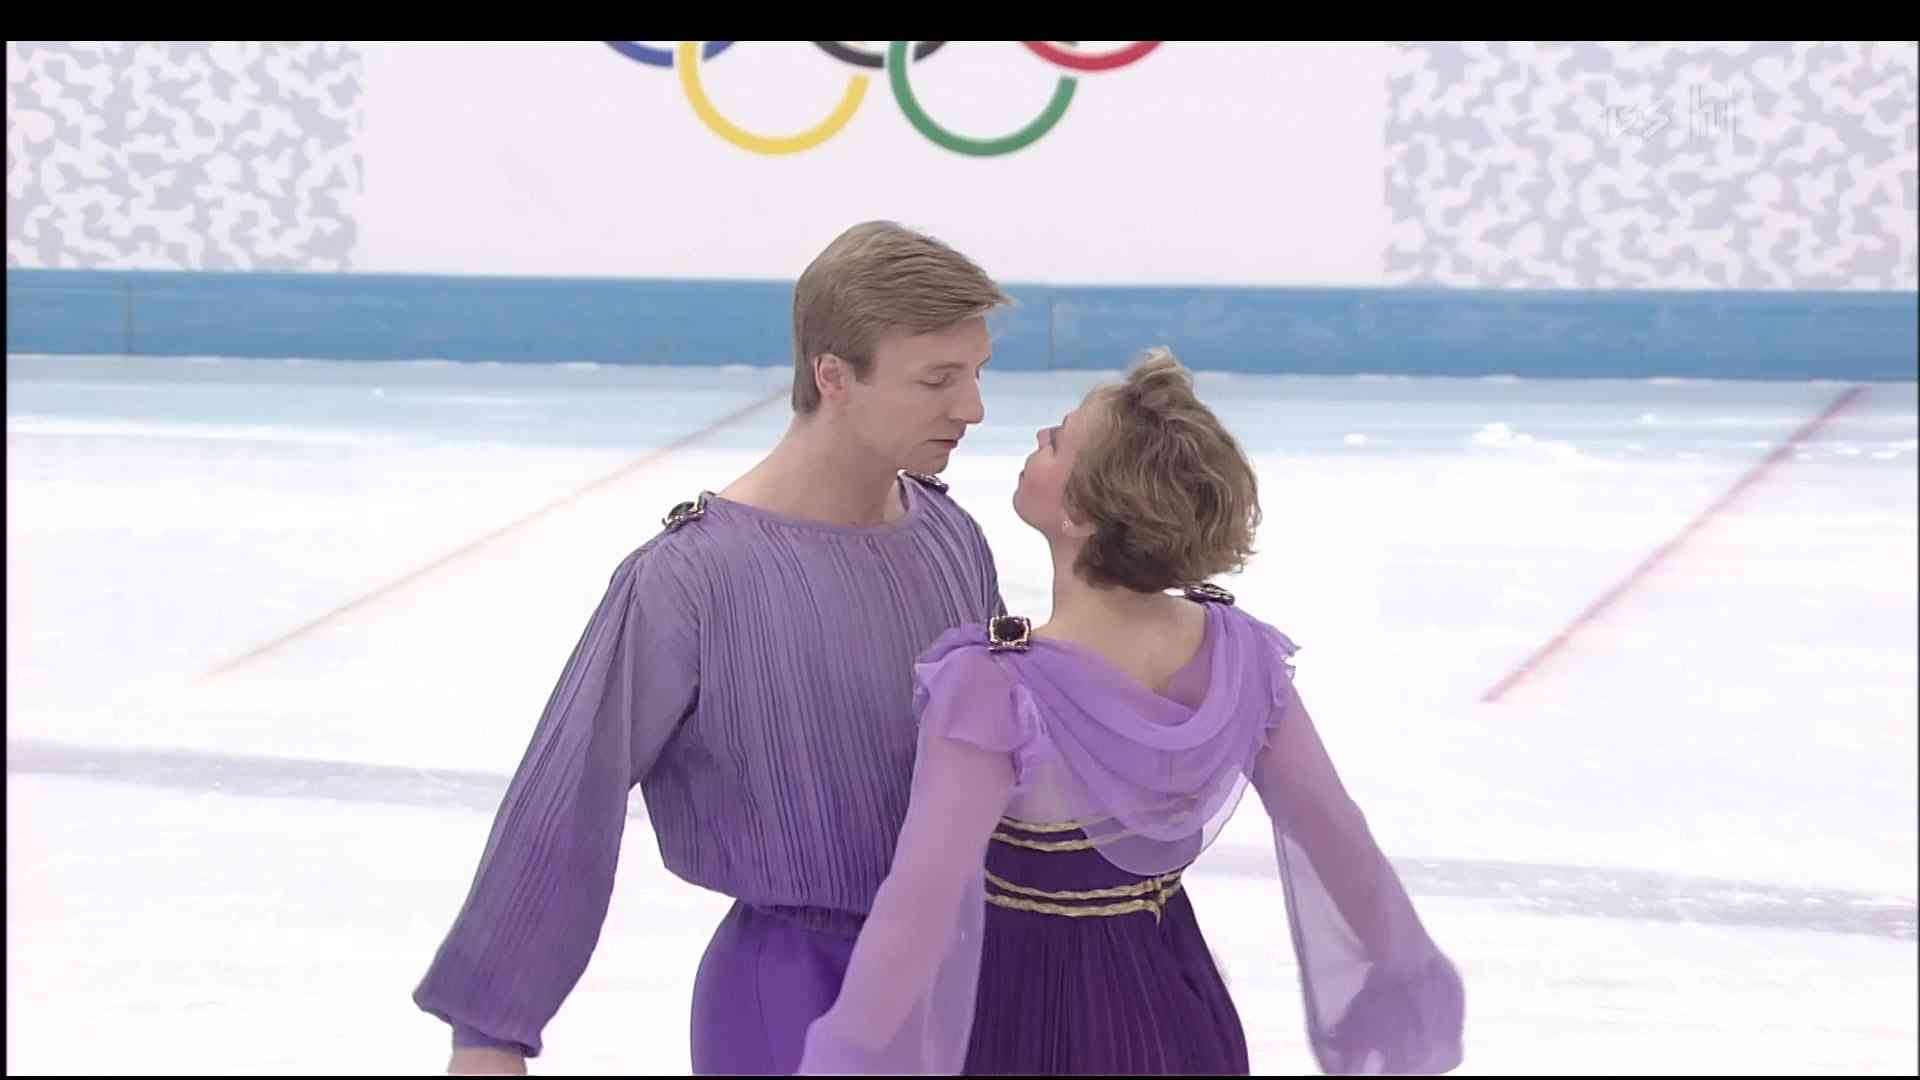 [HD] Jayne Torvill and Christopher Dean - Boléro - 1994 Lillehammer Olympic - Exhibition - YouTube